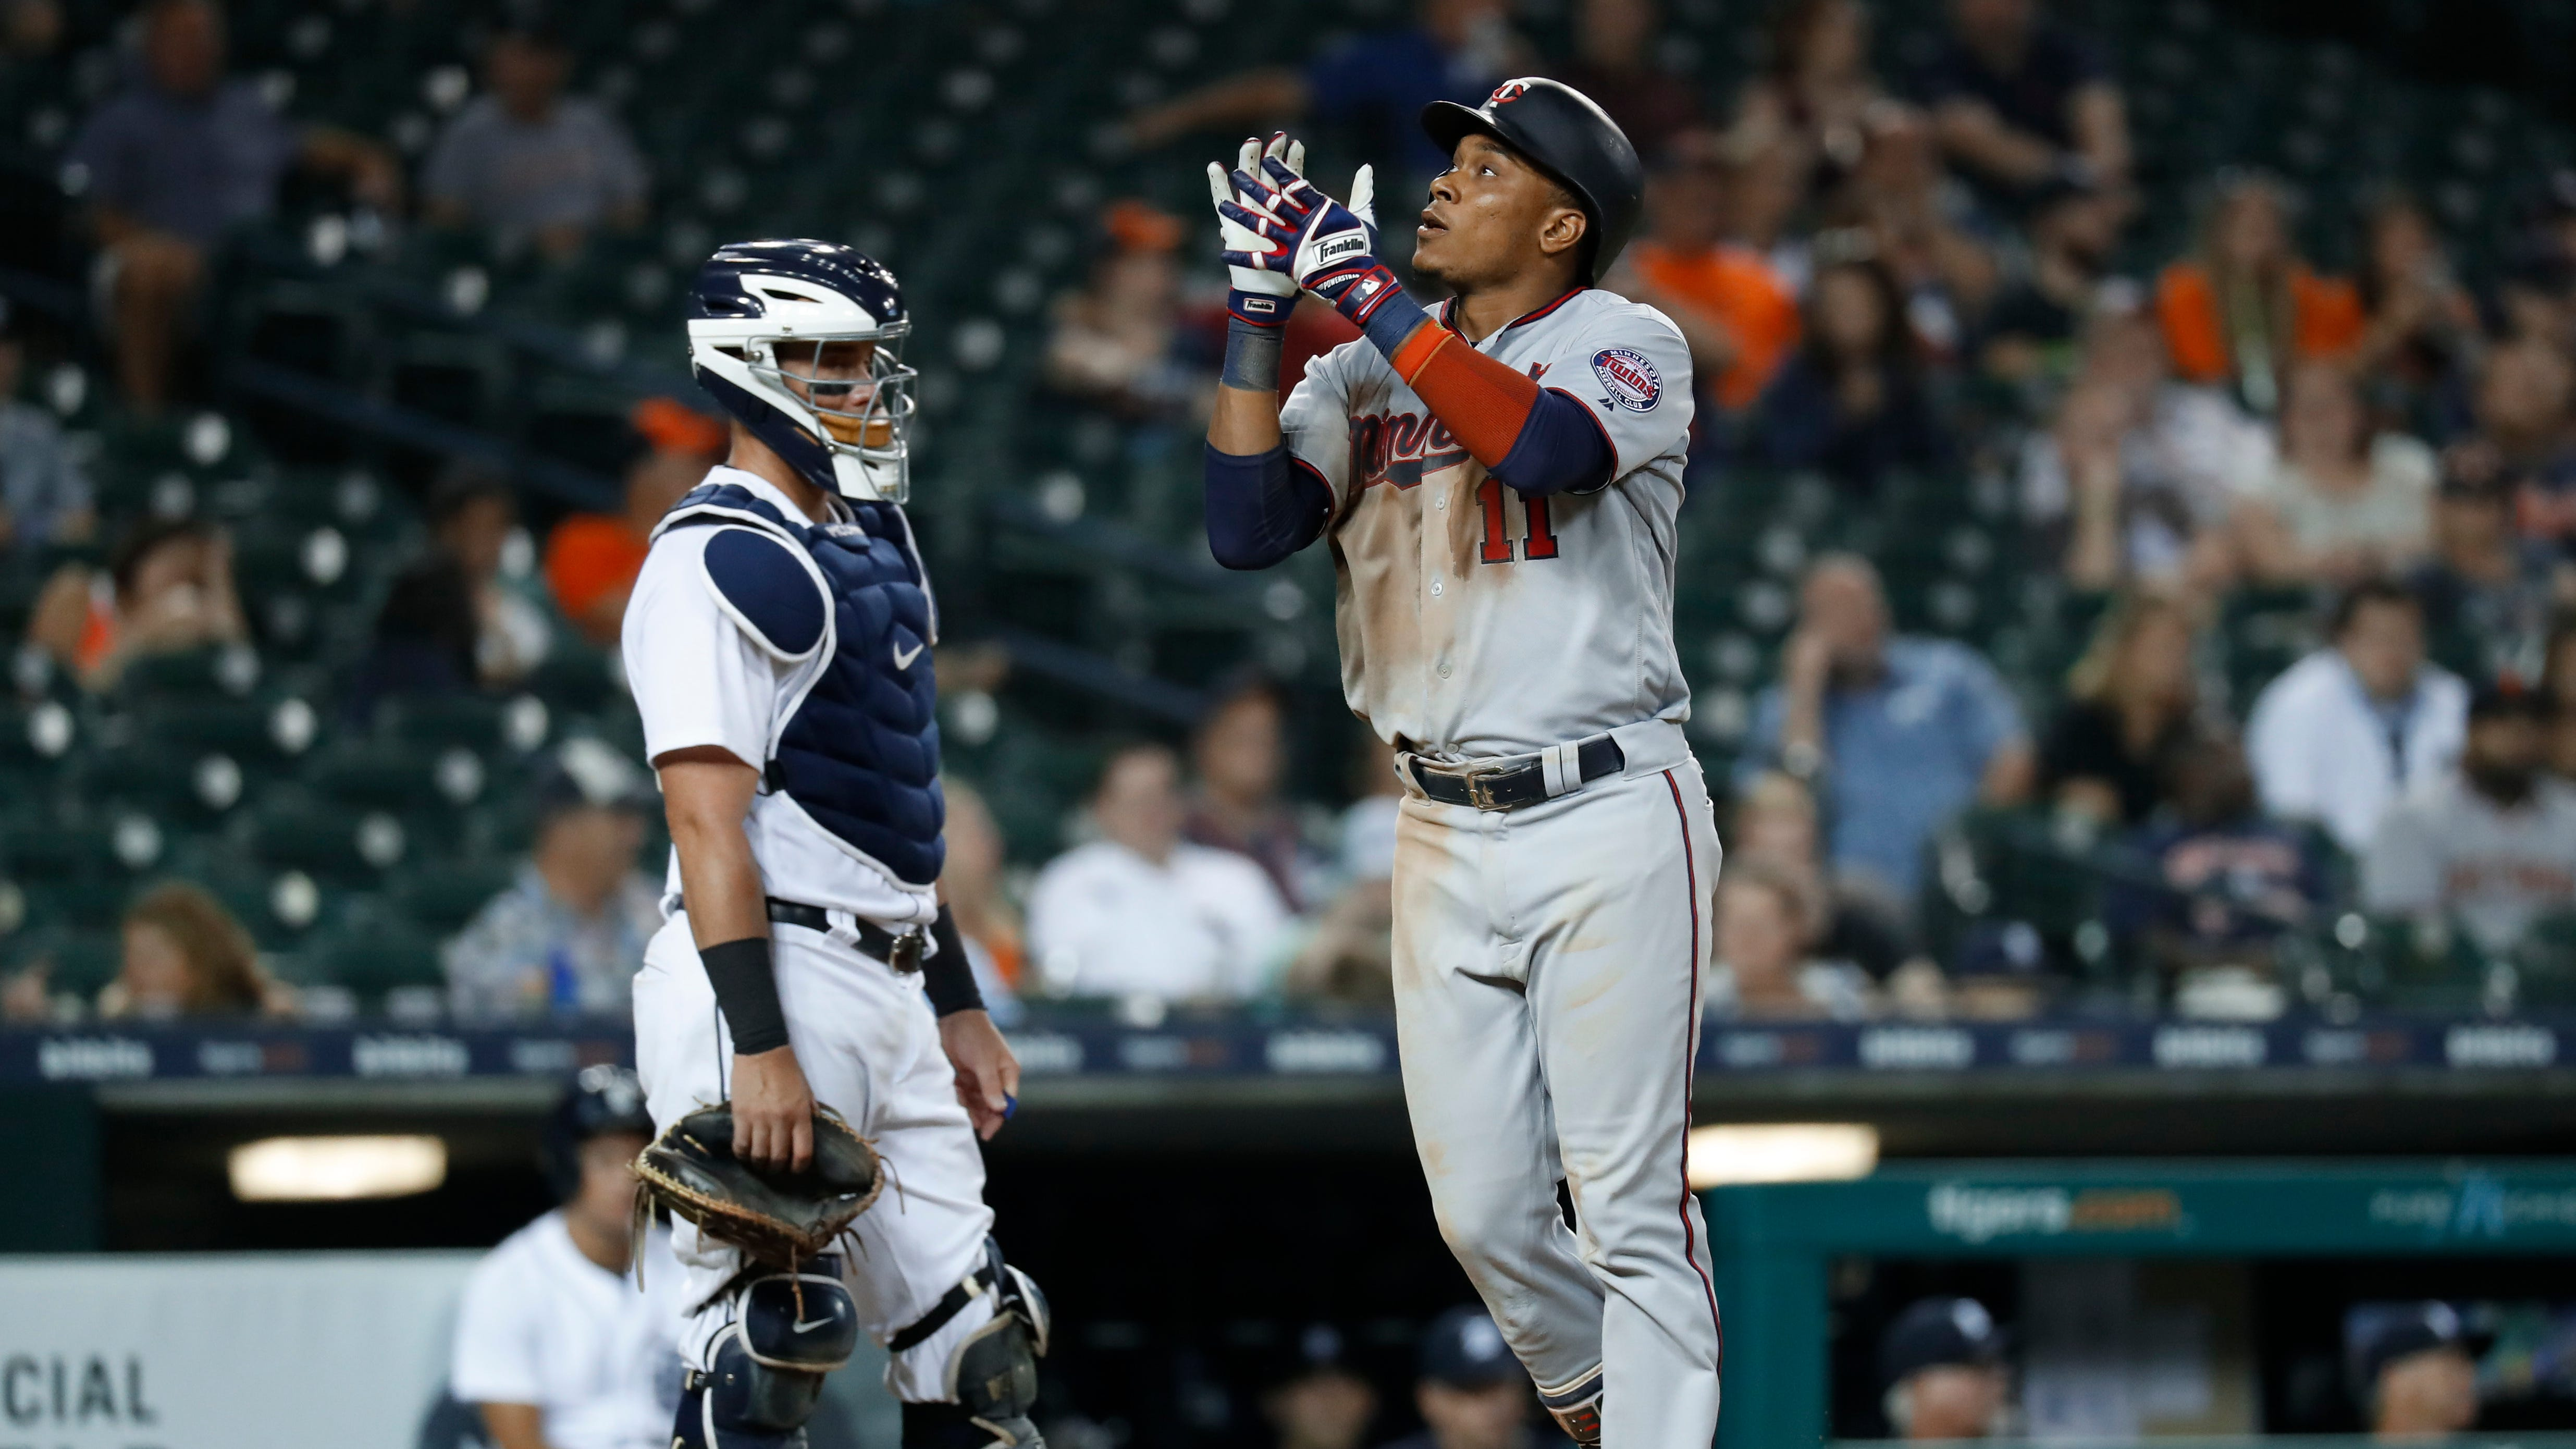 The Minnesota Twins' Jorge Polanco  celebrates his solo home run in the ninth inning in front of Detroit Tigers catcher James McCann.